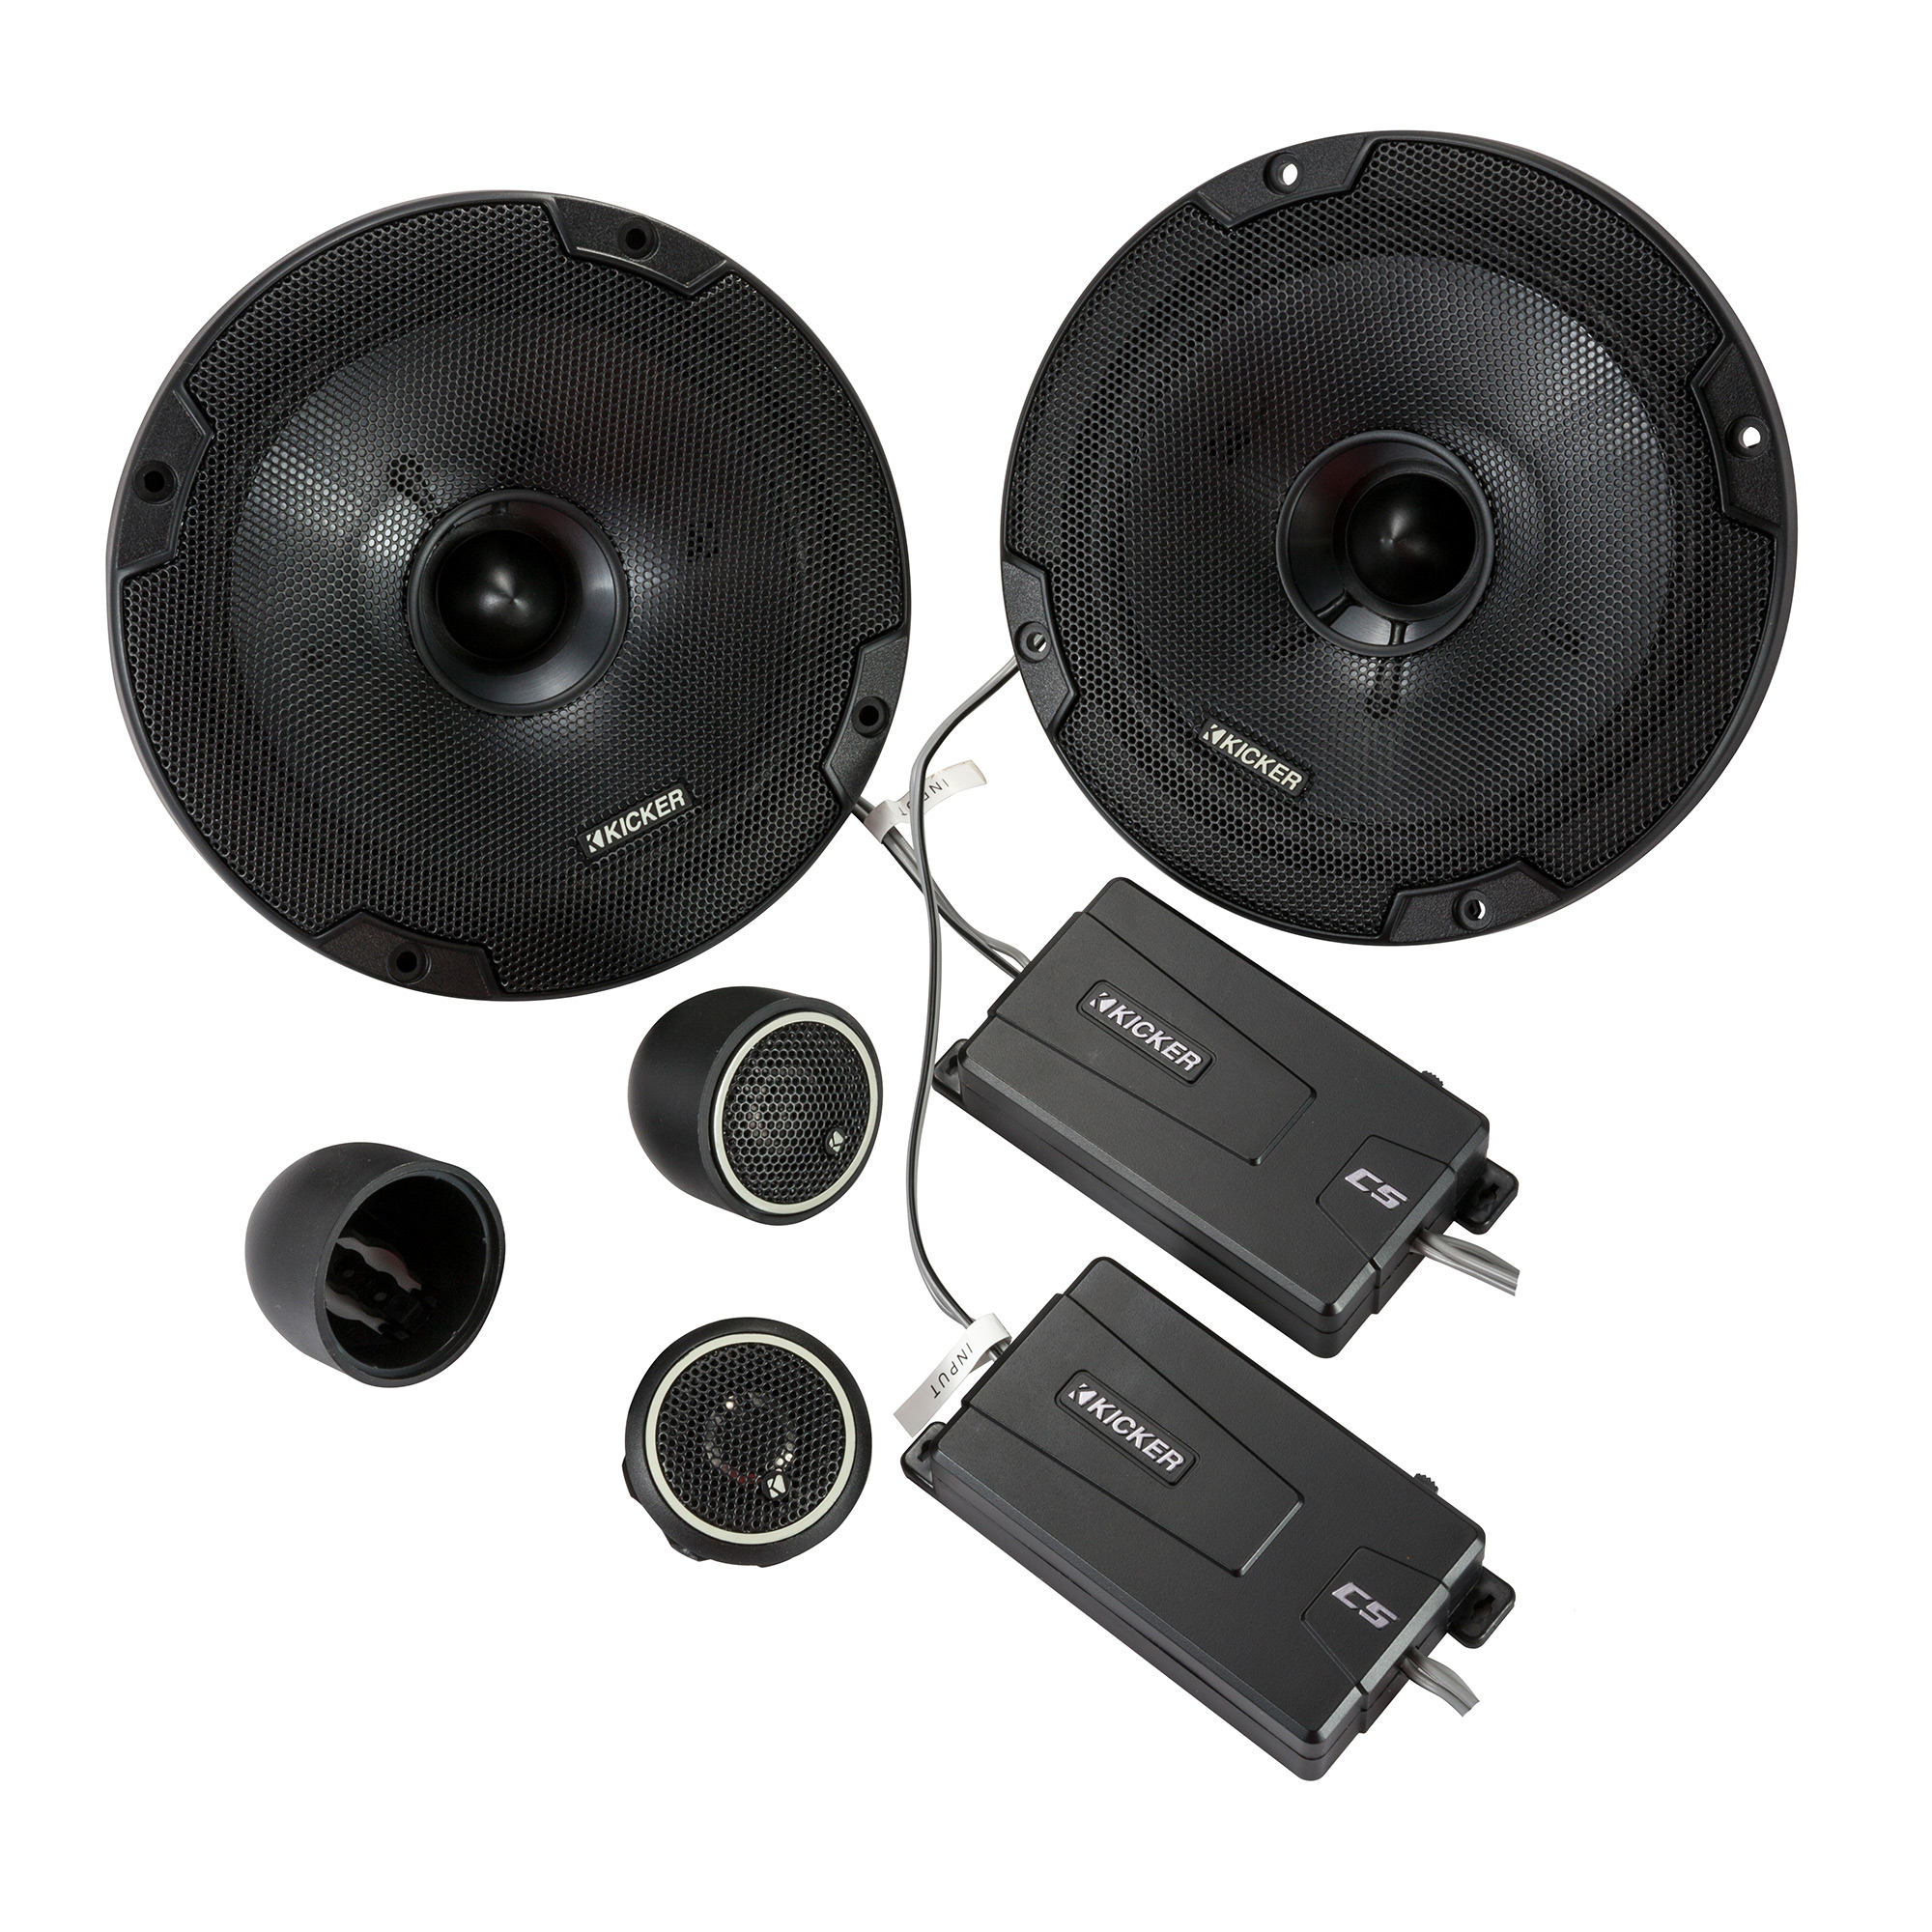 Kicker 46CSS674 CS-Series CSS67 6.75-Inch (165mm) Component System with .75-inch tweeters, 4-Ohm (Pair)